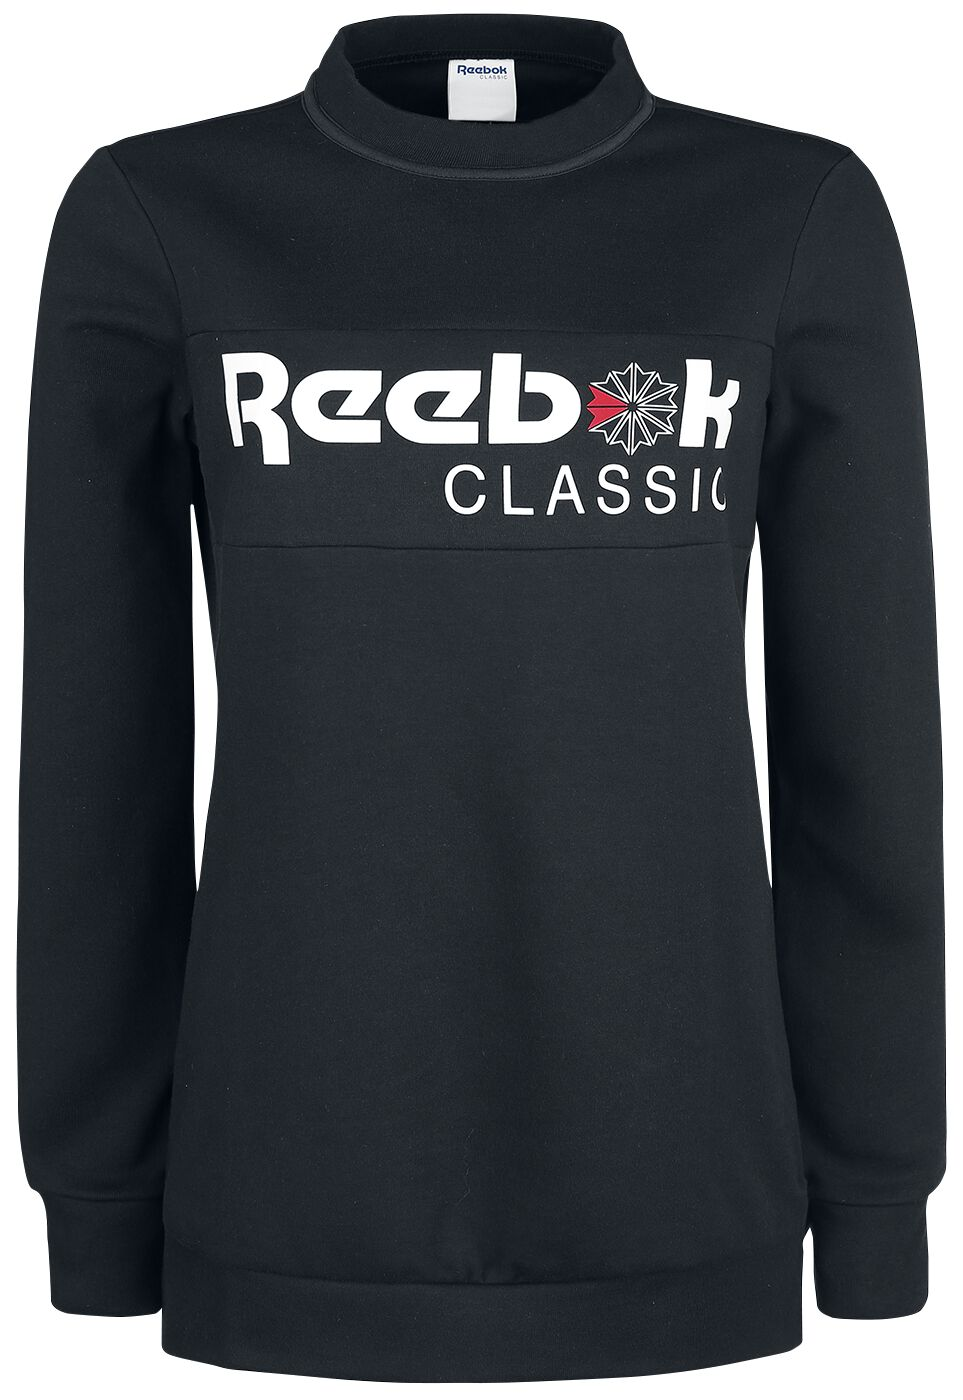 Image of   Reebok Iconic Fleece Crew Girlie sweatshirt sort